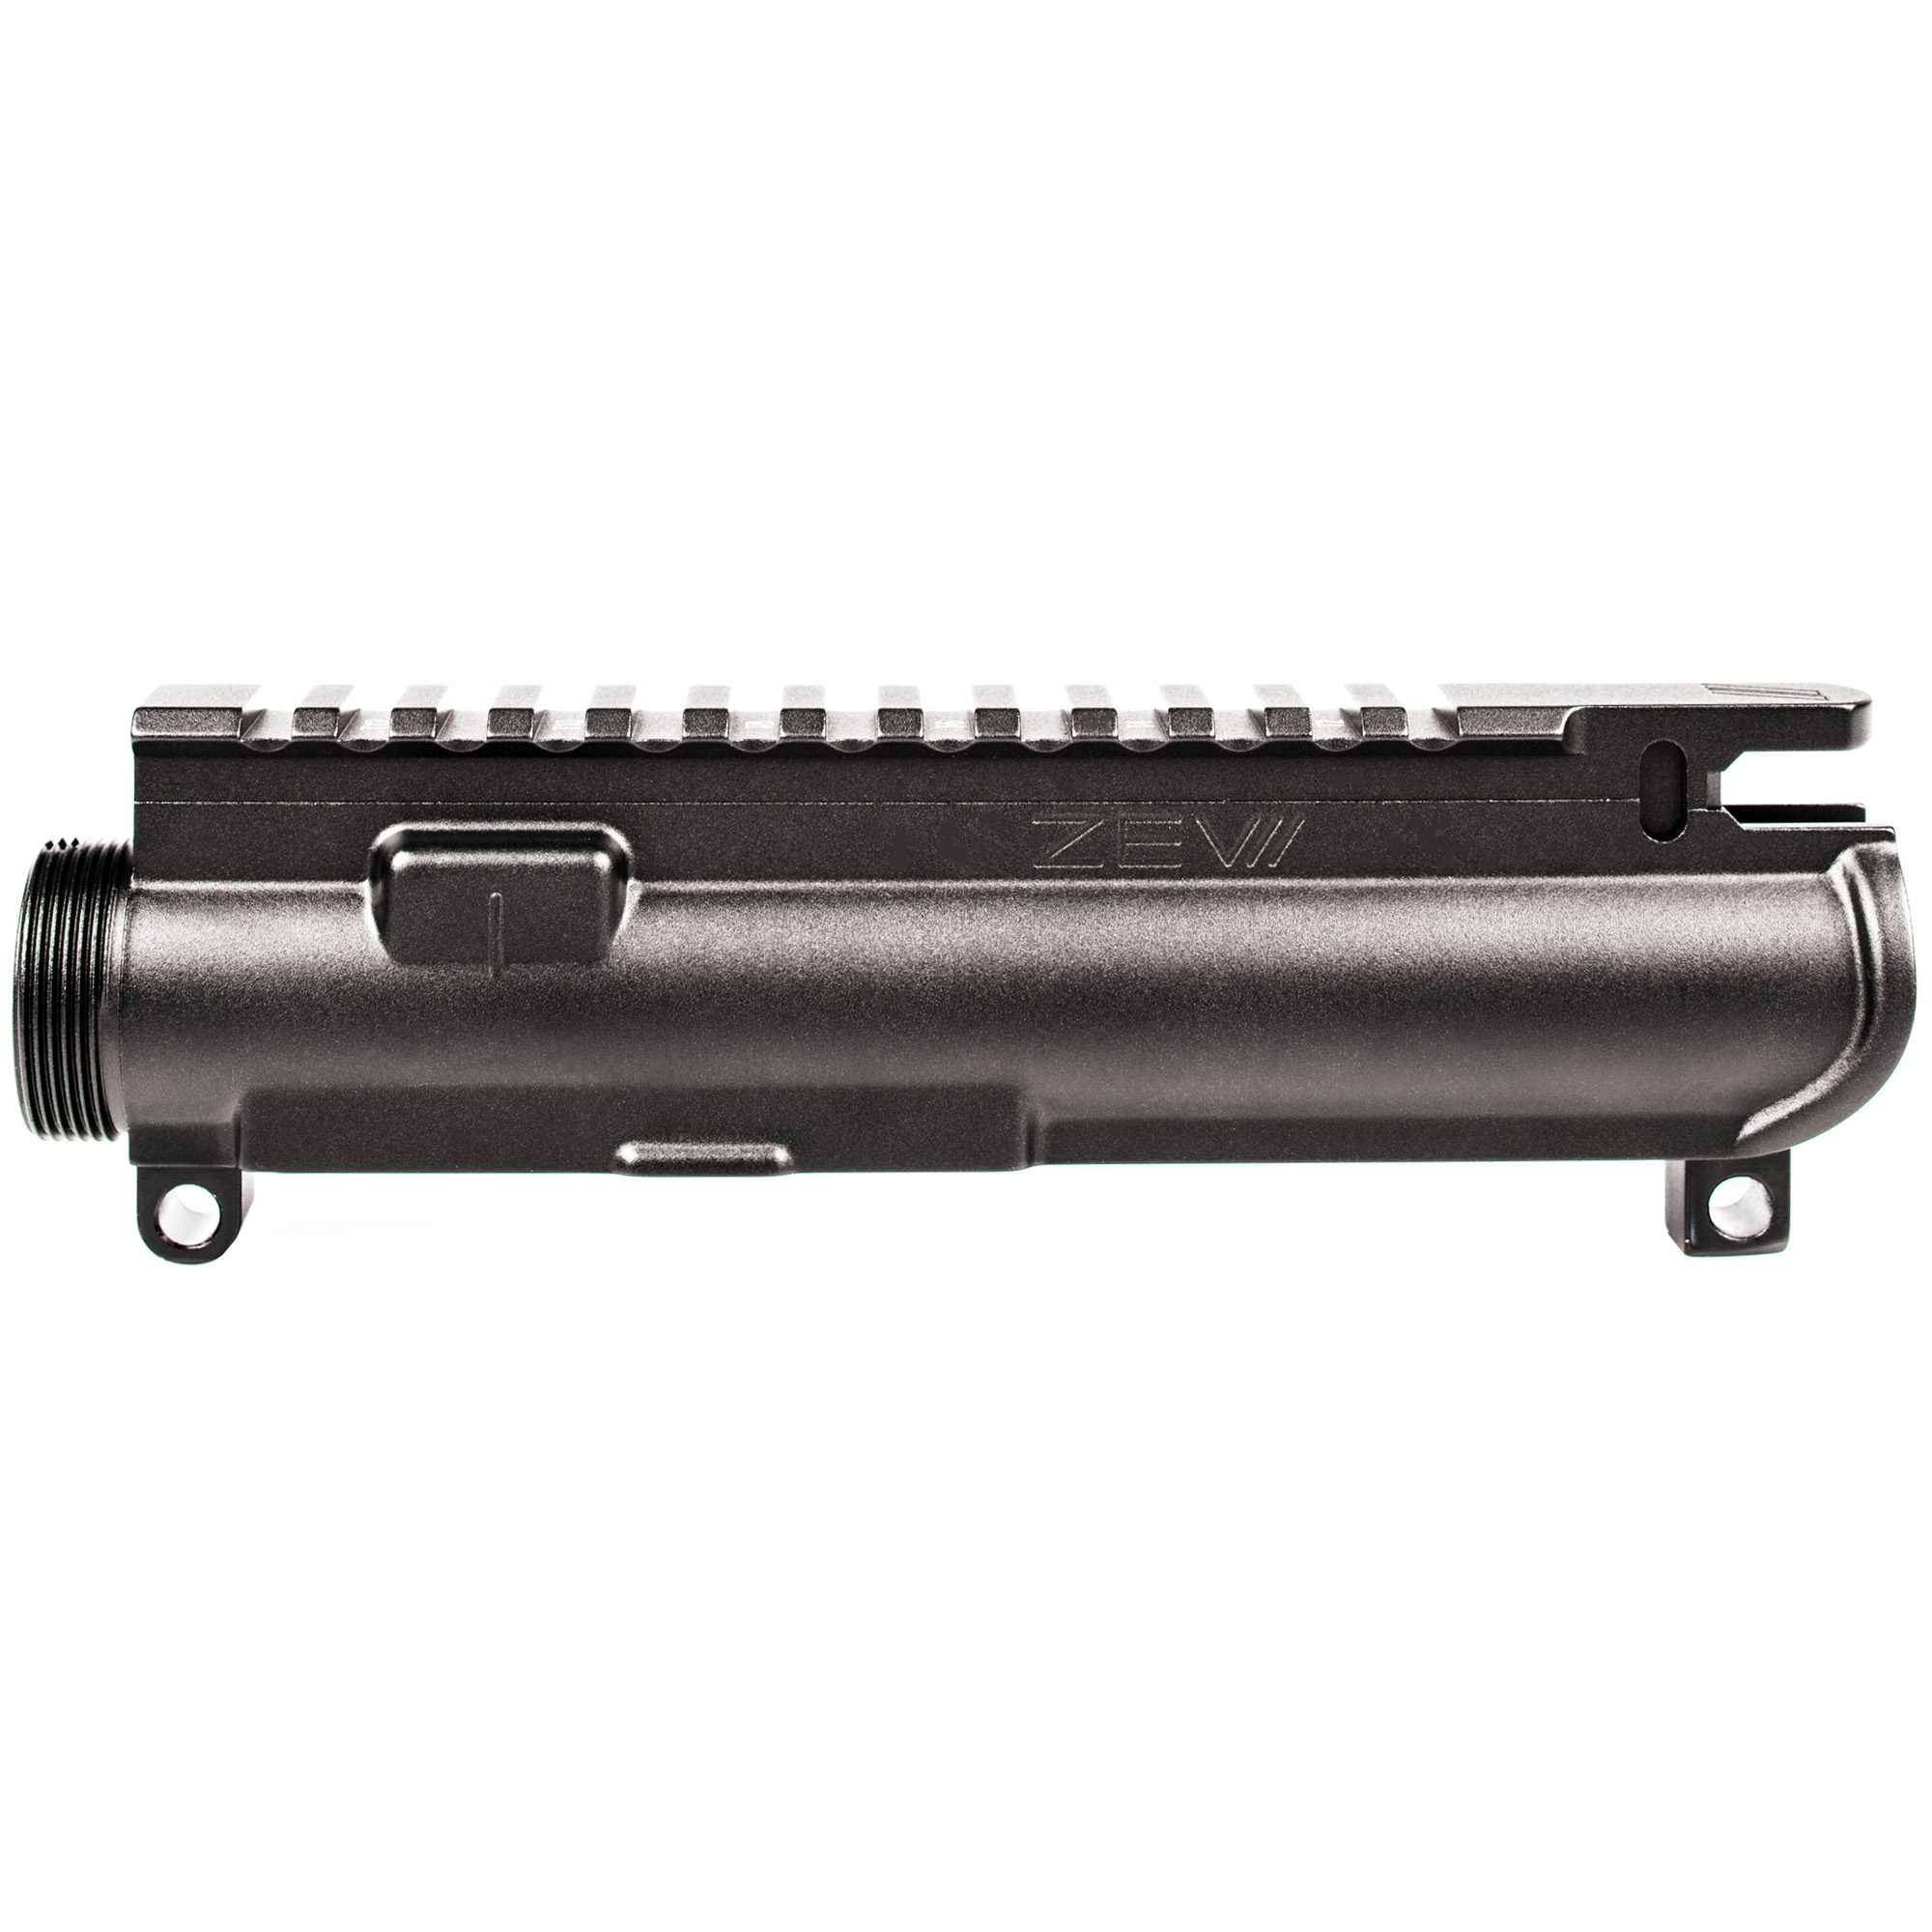 Zev Forged Upper 556nato Blk